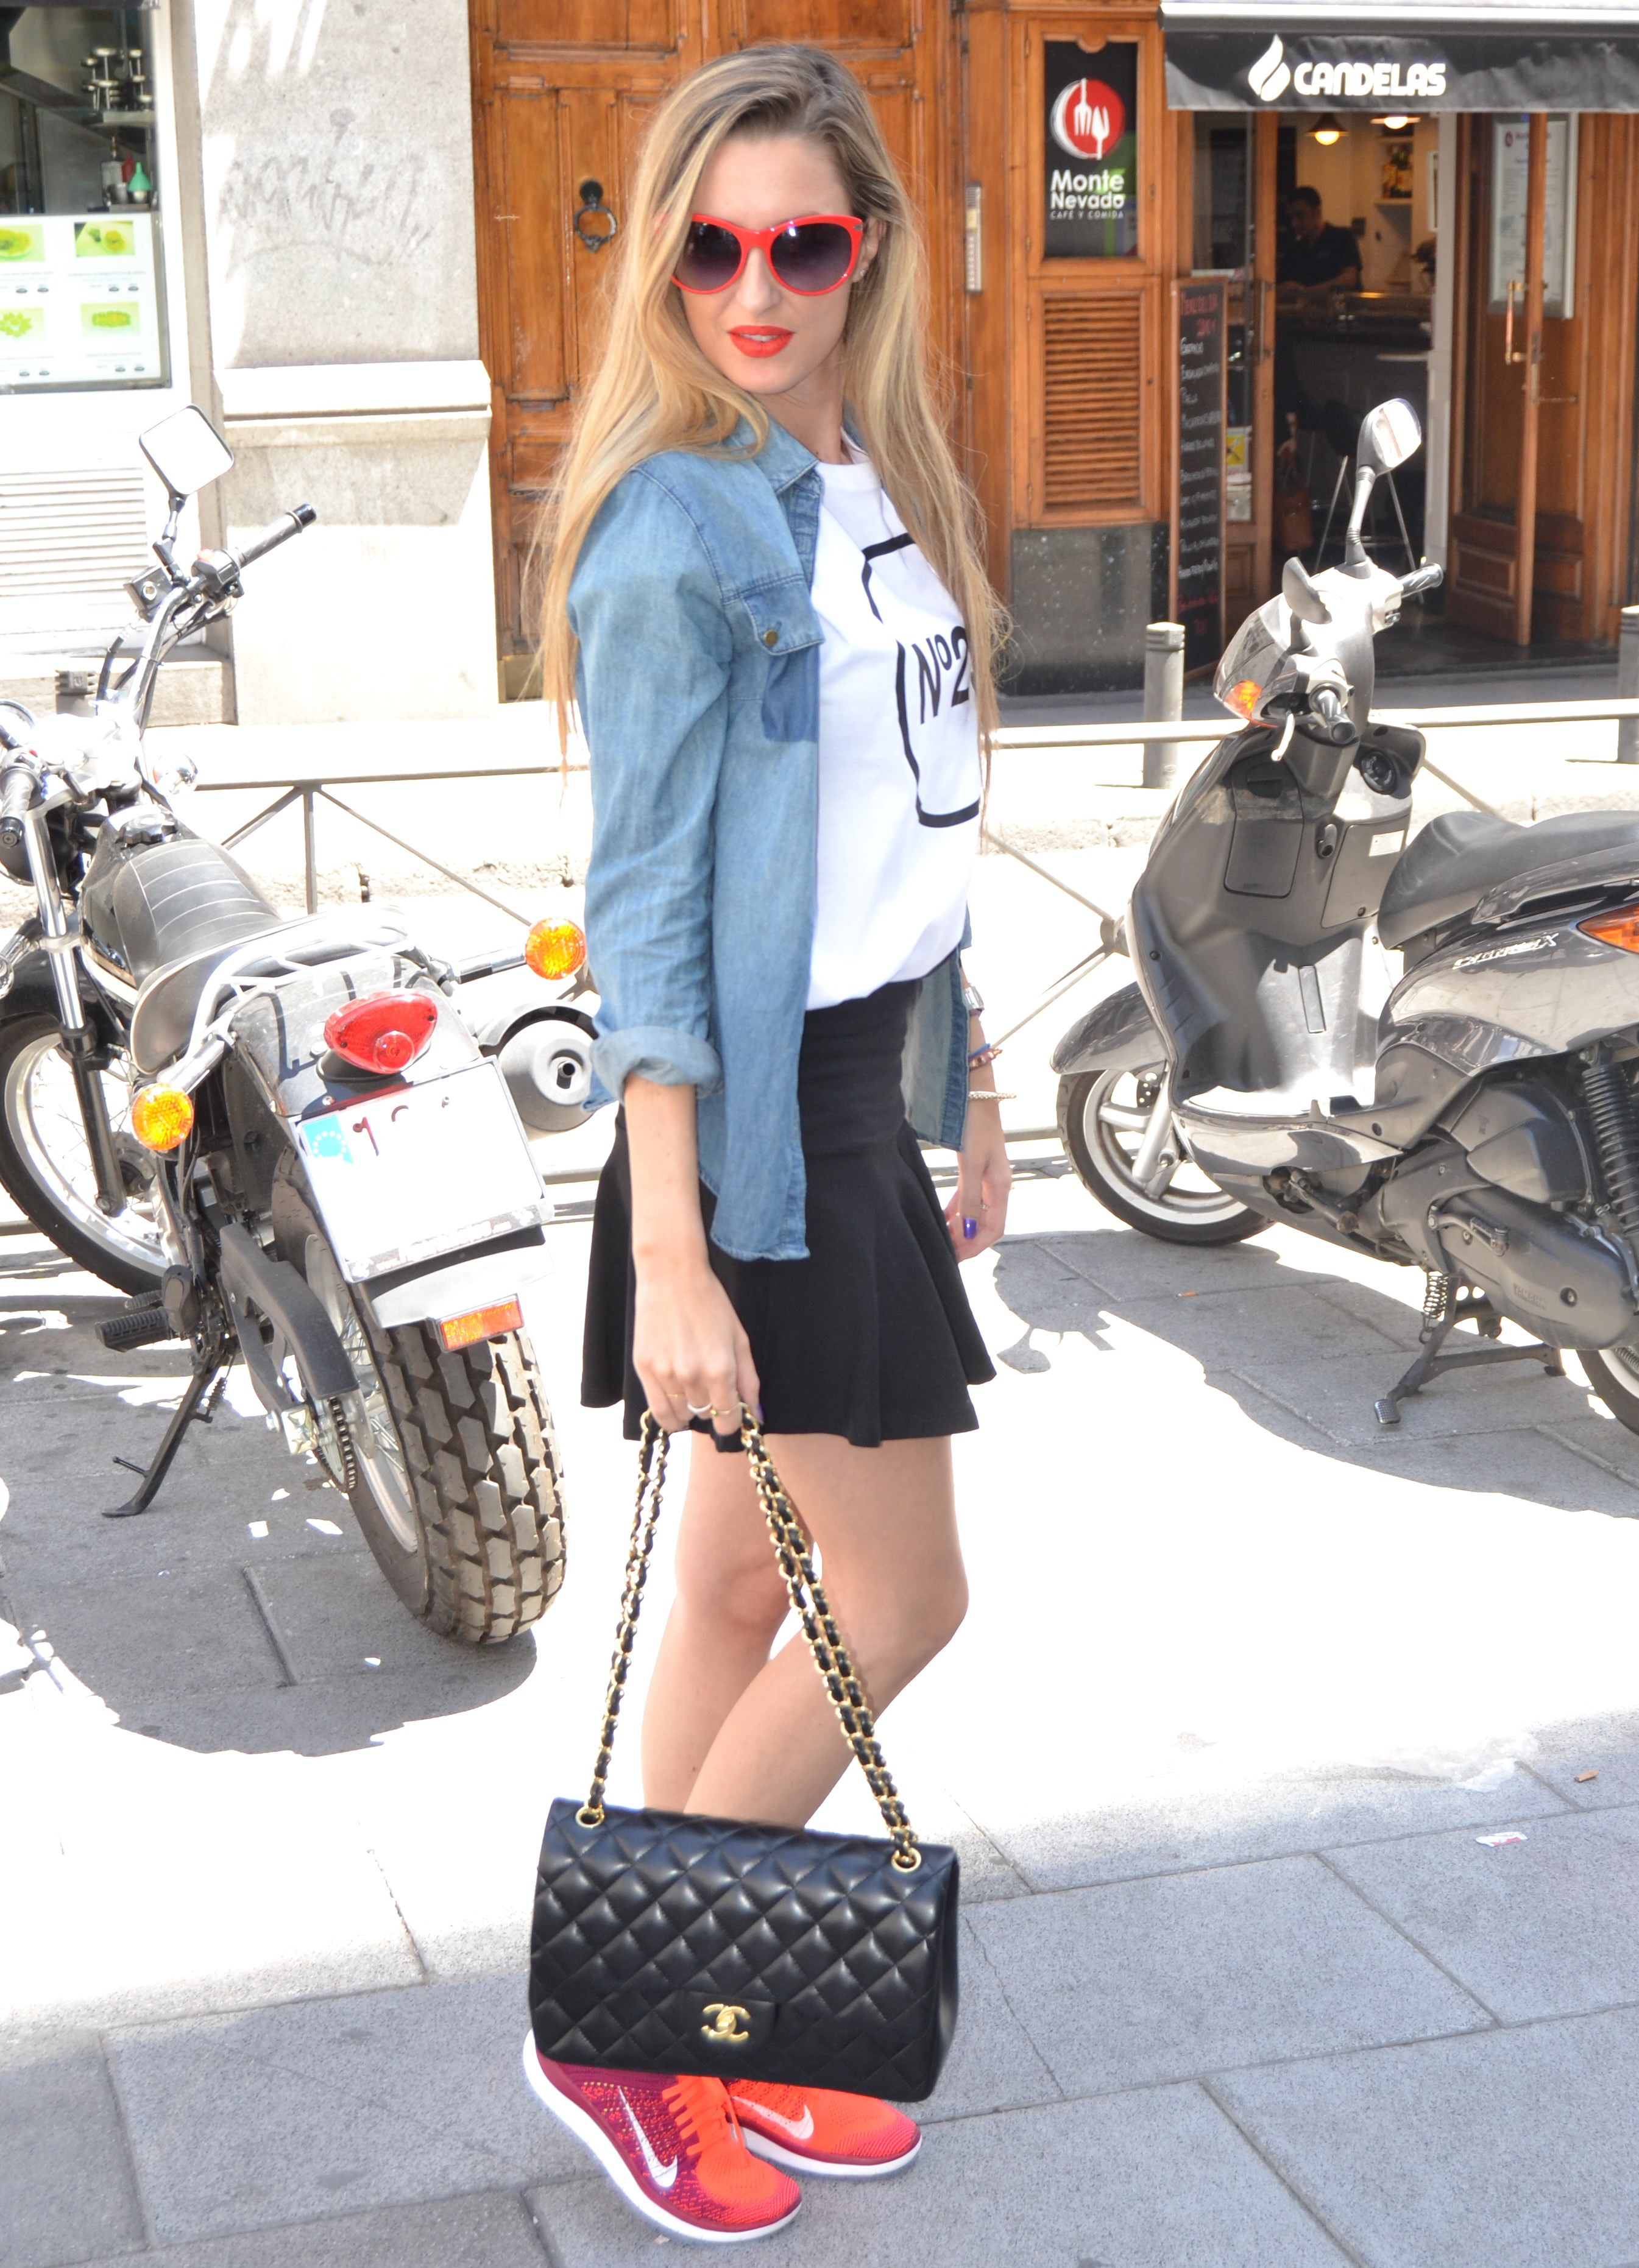 Nike_Free_FlyKnight_Sneakers_Chanel_255_Chanel_Bag_Guess_Sunglasses_Denim_Shirt_Lara_Martin_Gilarranz_Bymyheels (2)